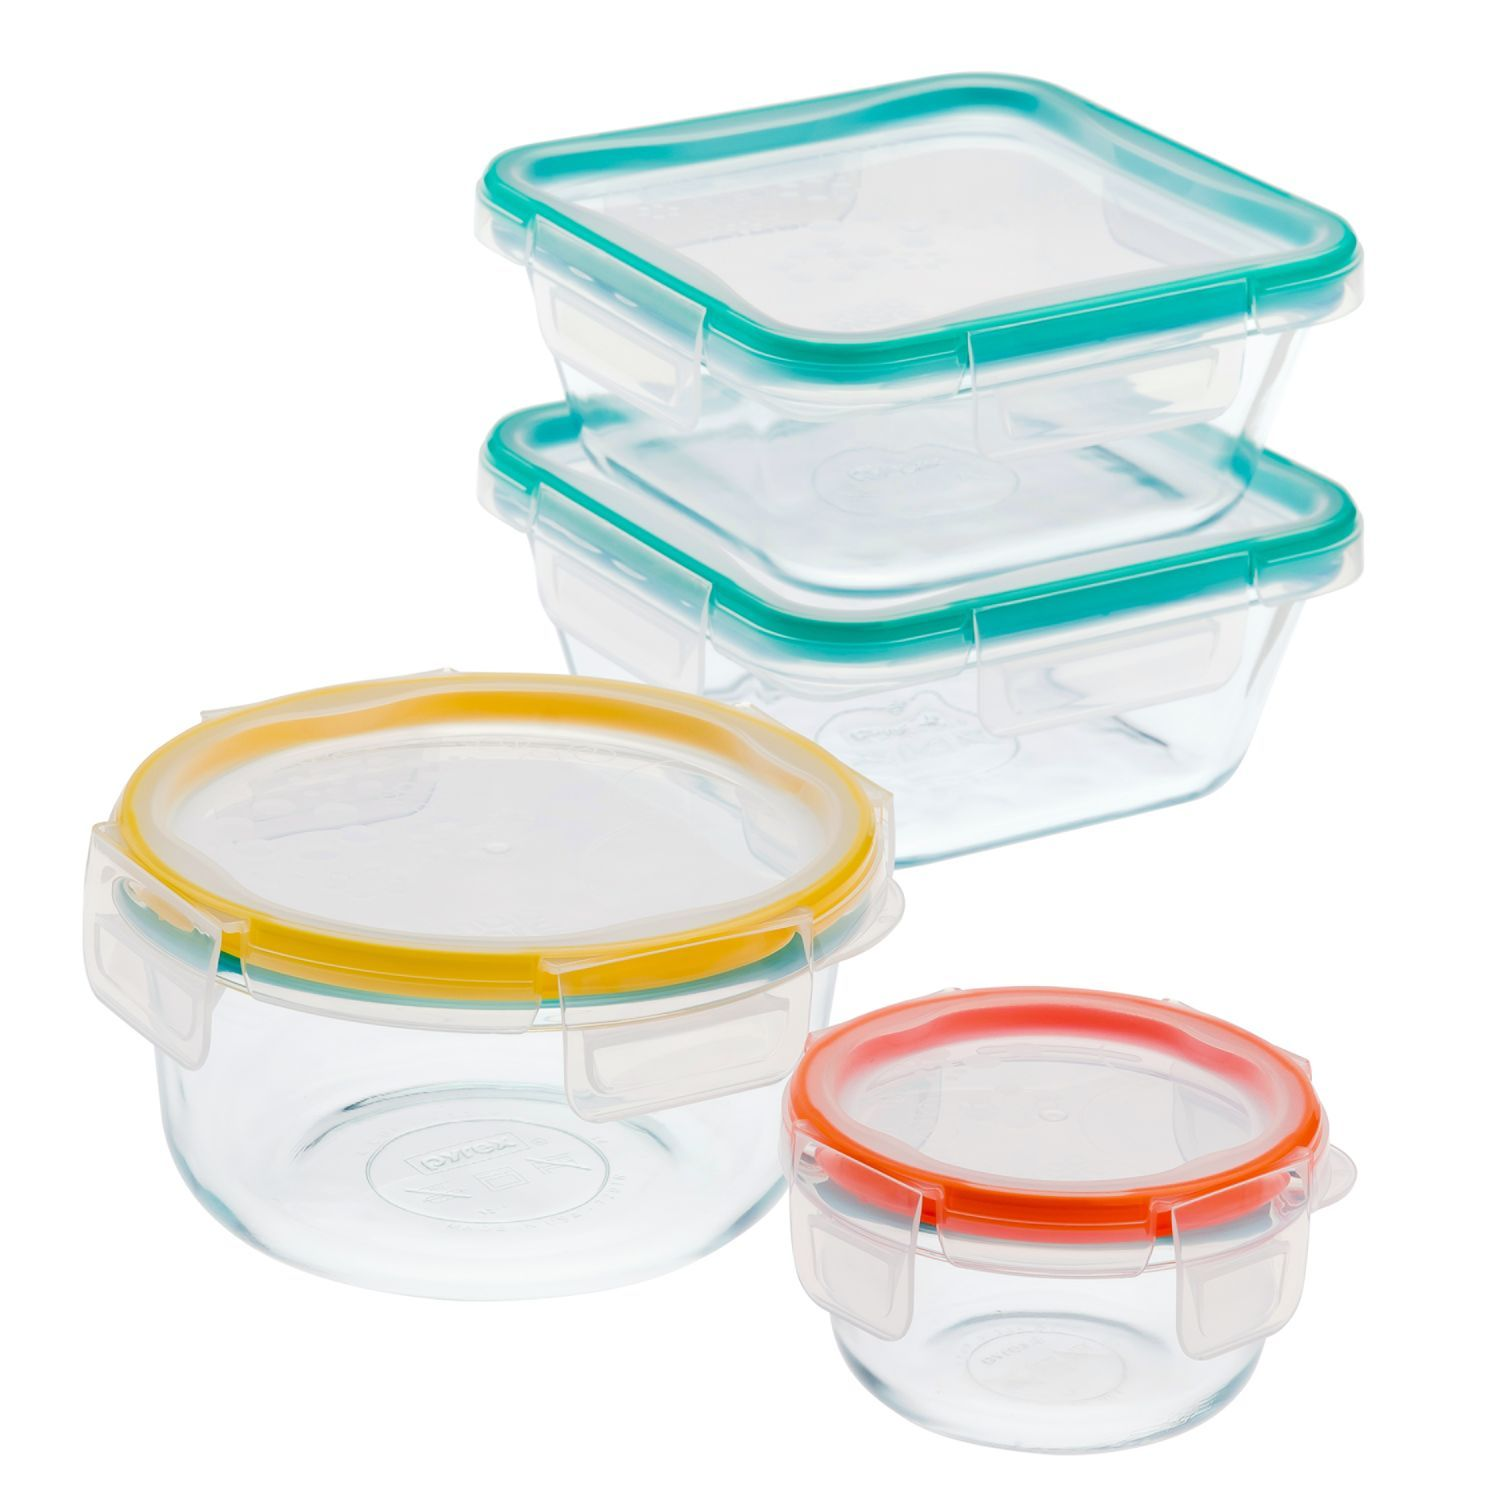 Snapware Total Solution 8 Pc Pyrex Glass Food Storage Set W/Snapware Lids  Review